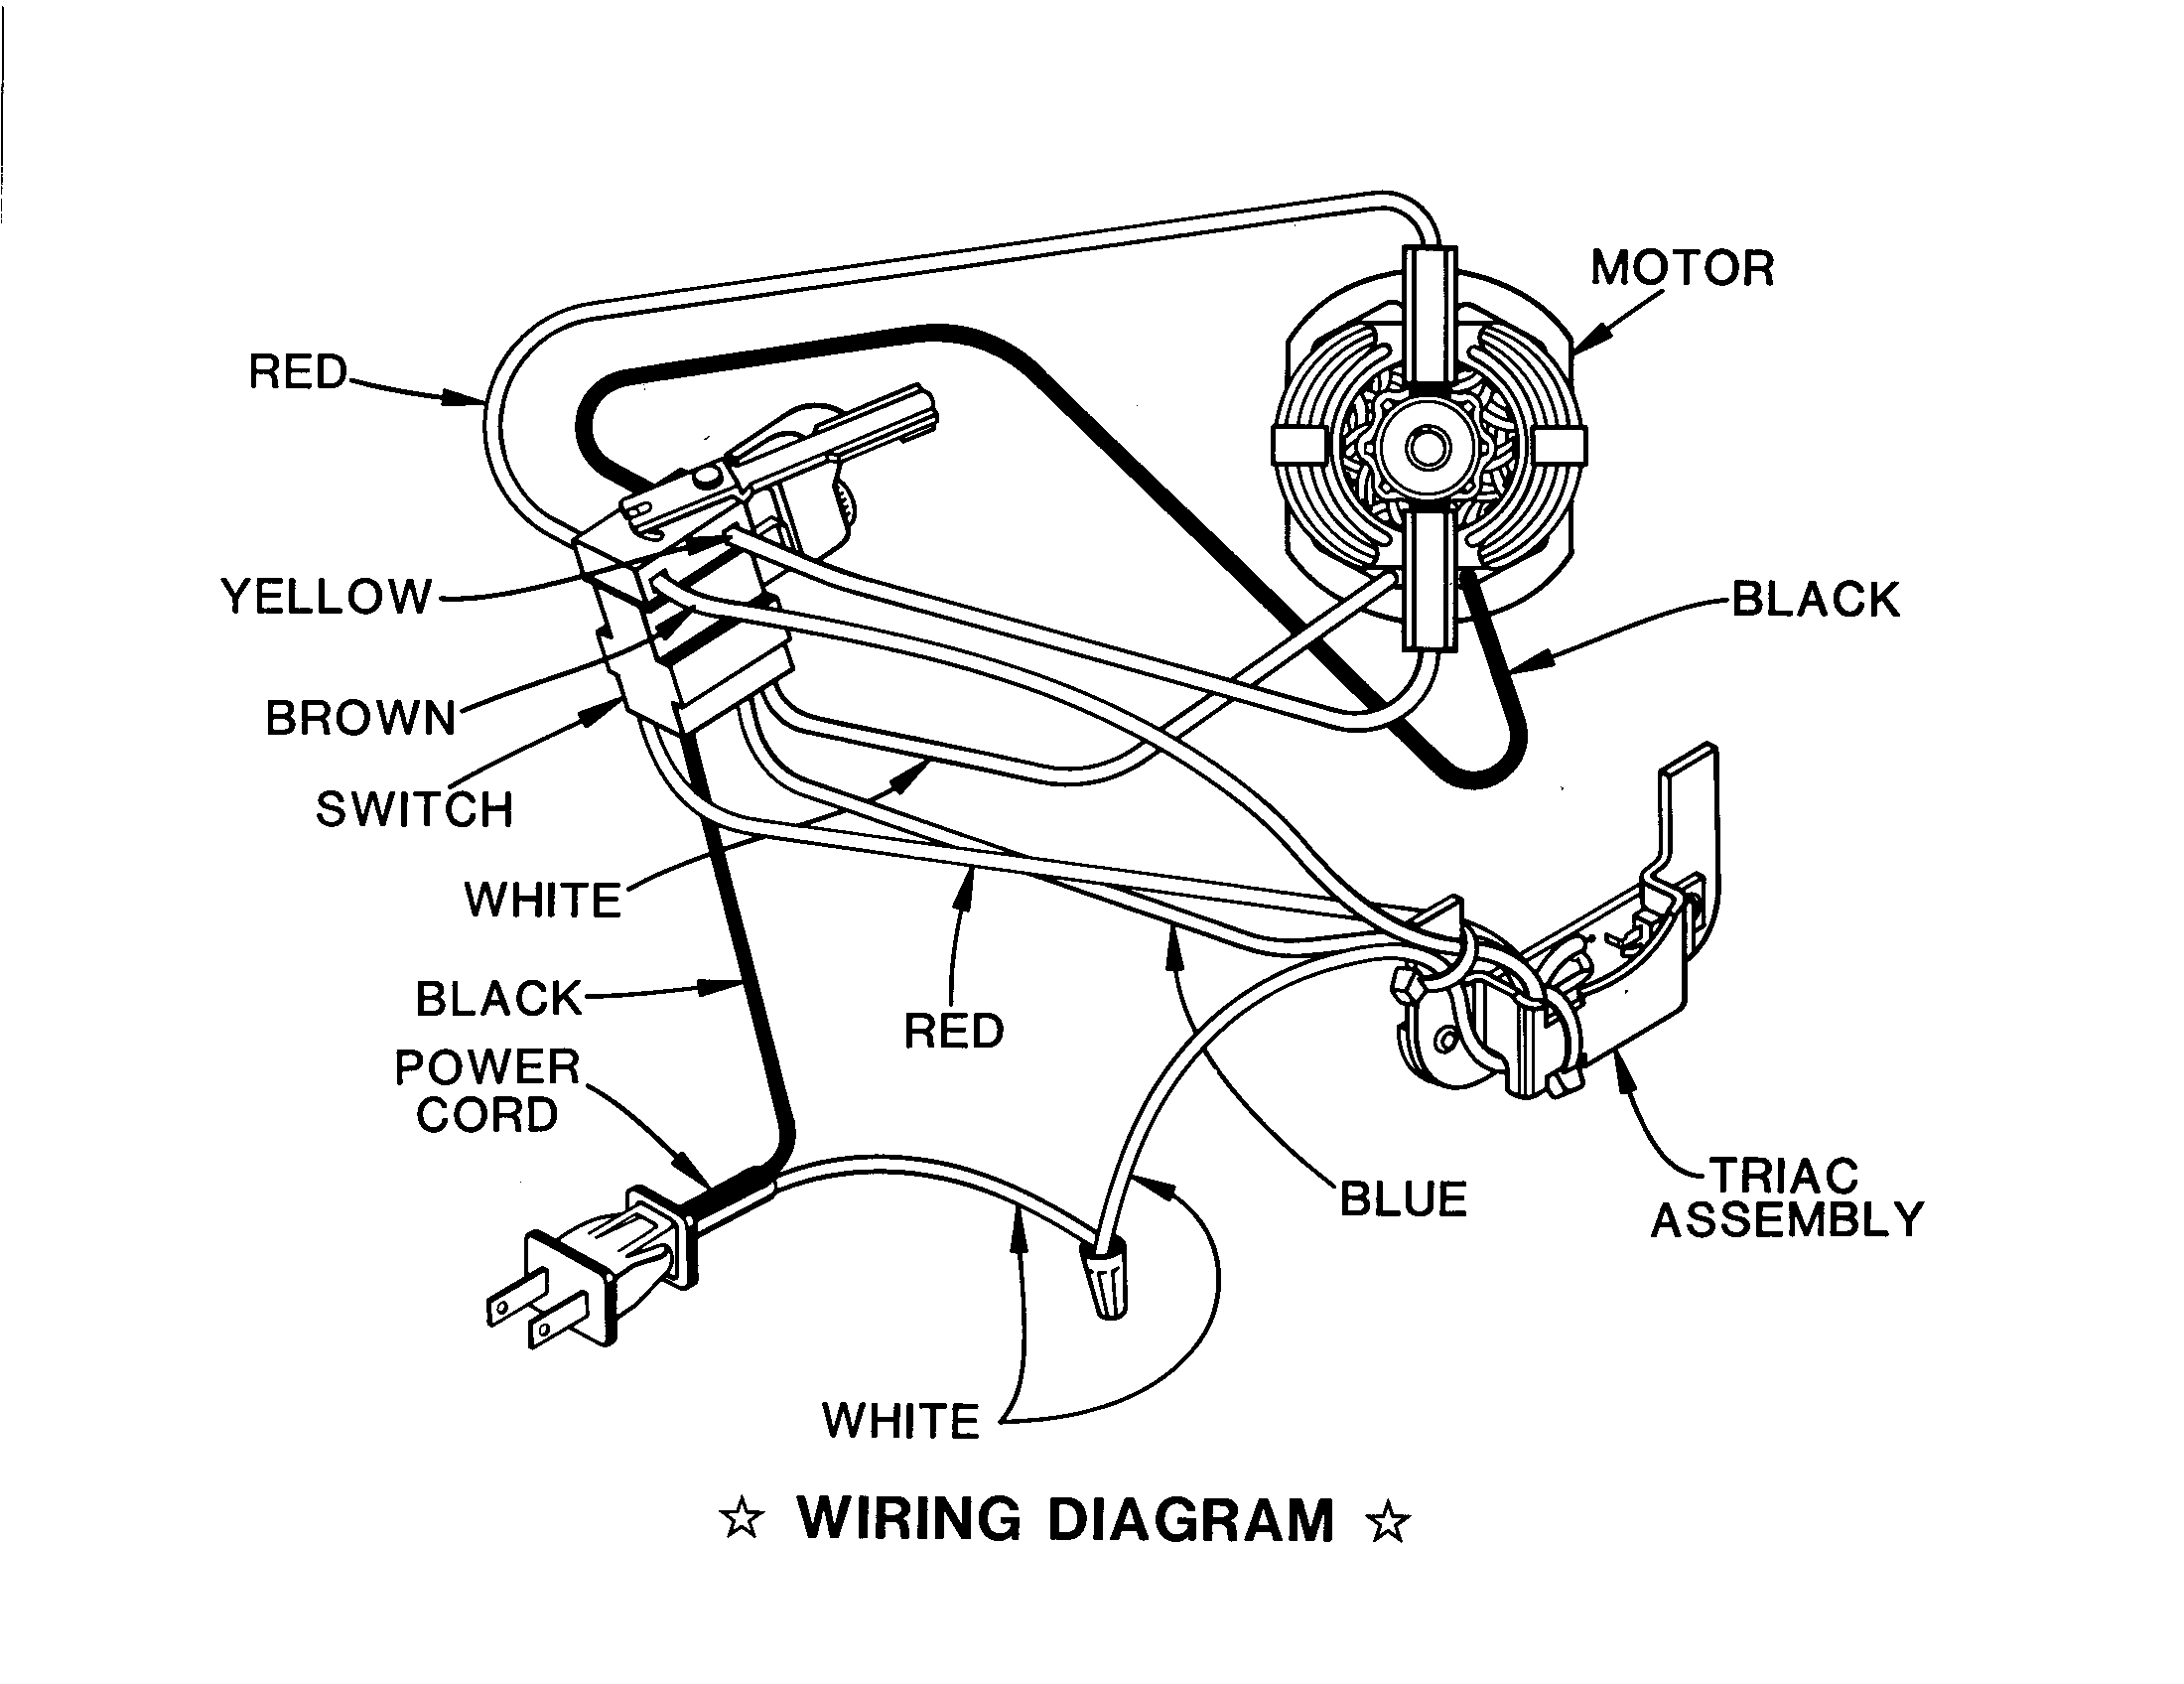 Corded Drill Wiring Diagram : 27 Wiring Diagram Images